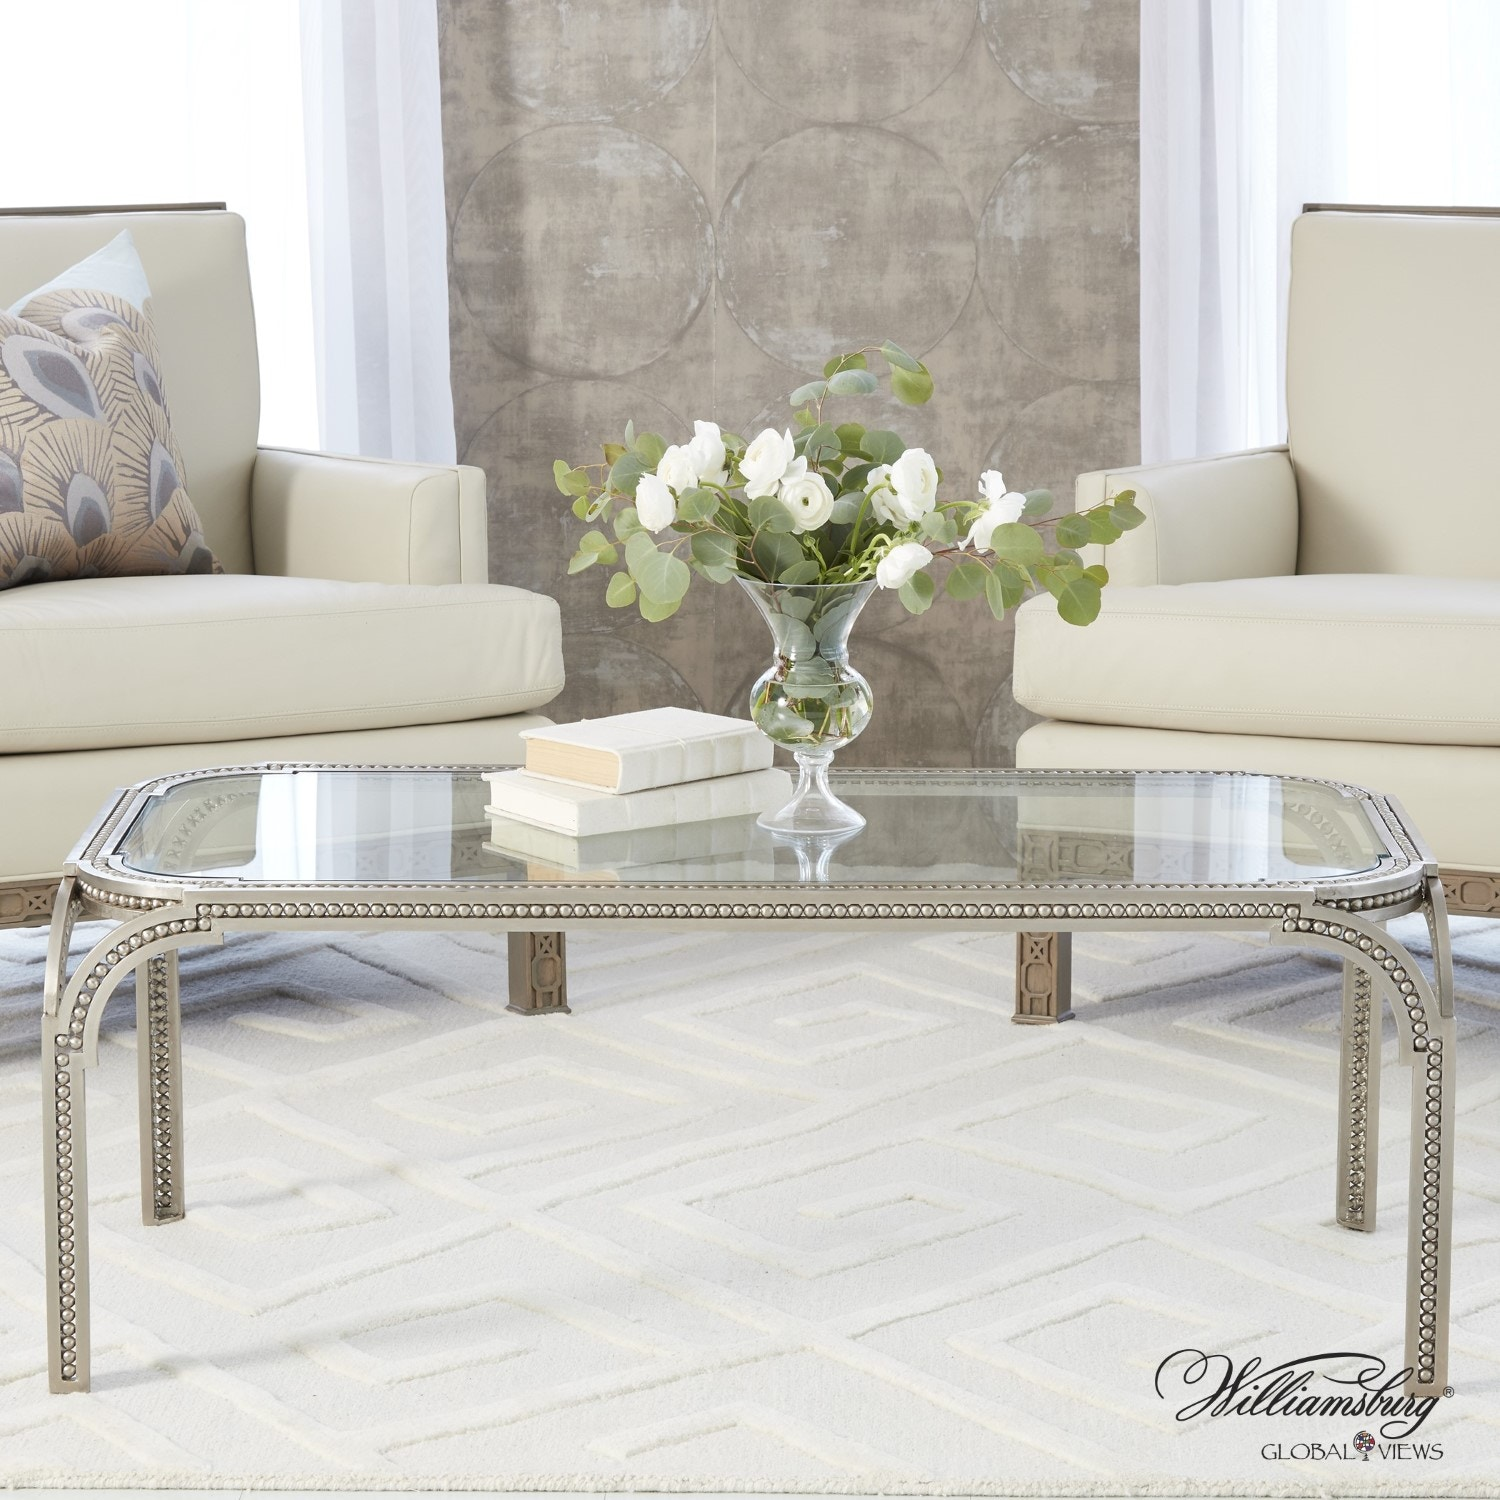 Global Views Living Room Forged Pearl Cocktail Table 4.90123 At Druryu0027s Inc.